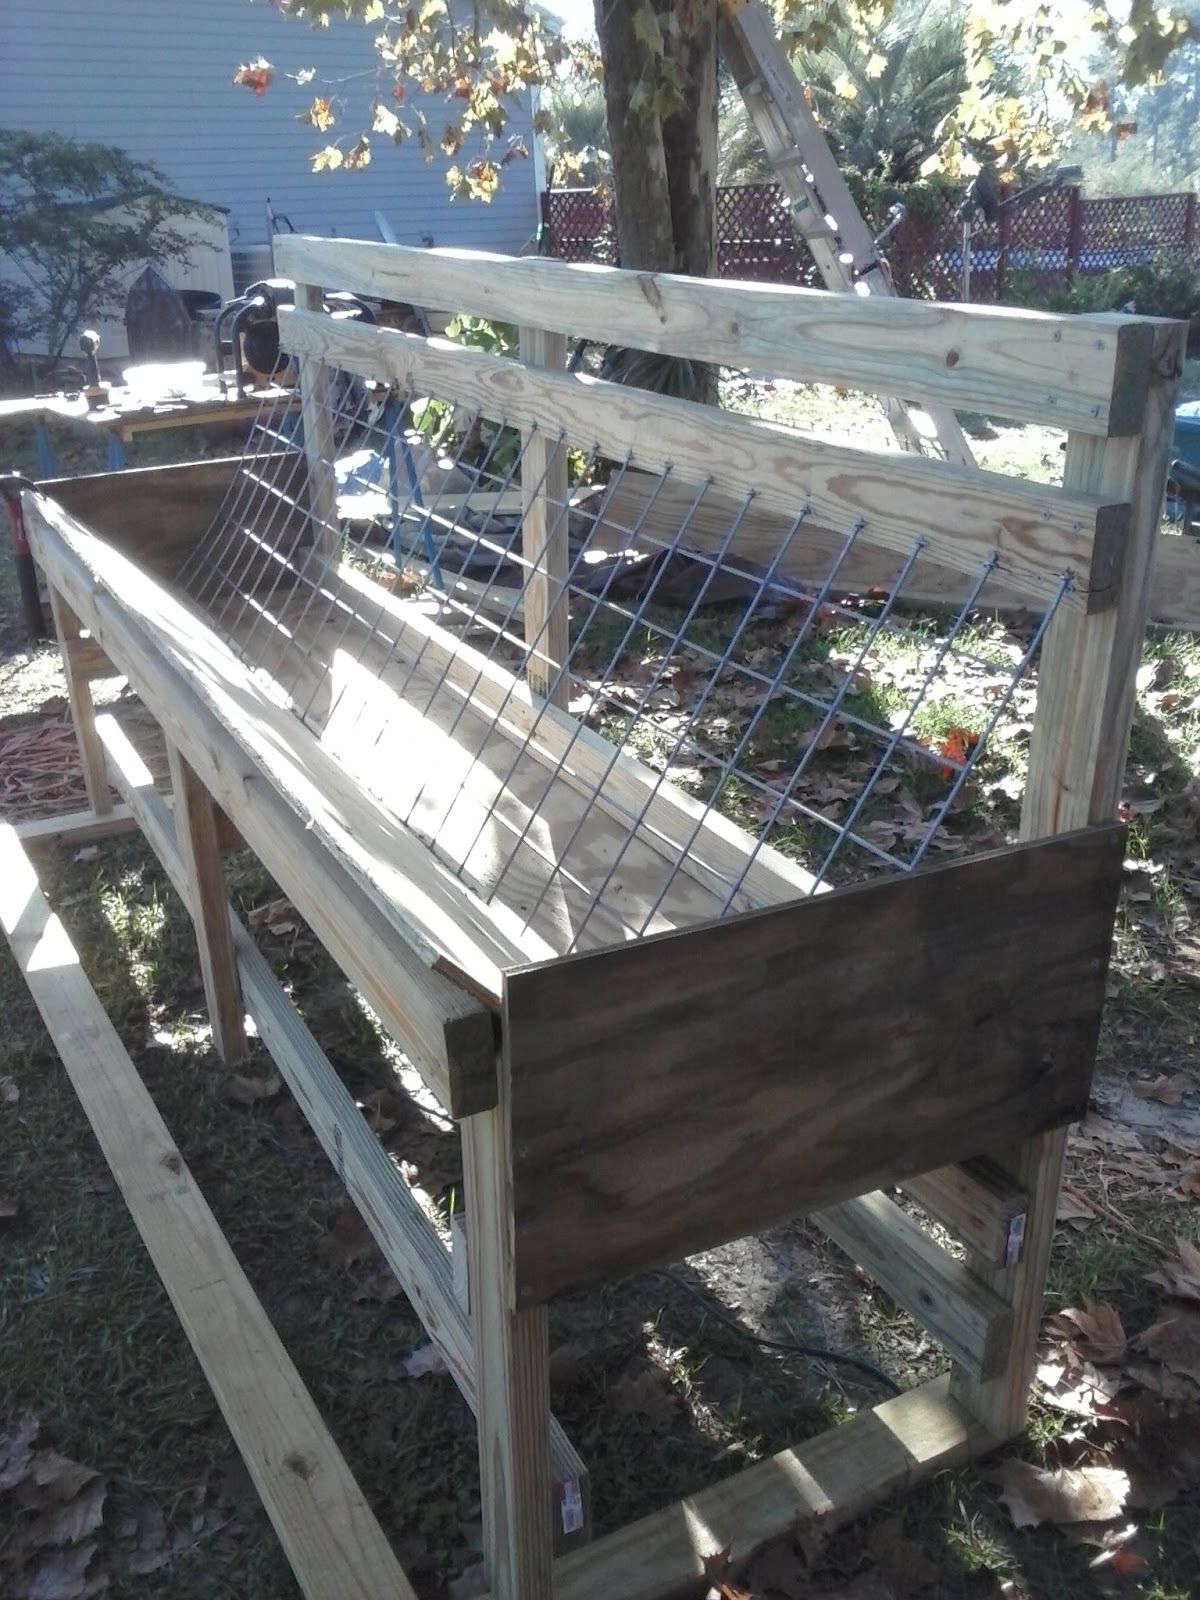 The Best Hay Feeder For Goats In World